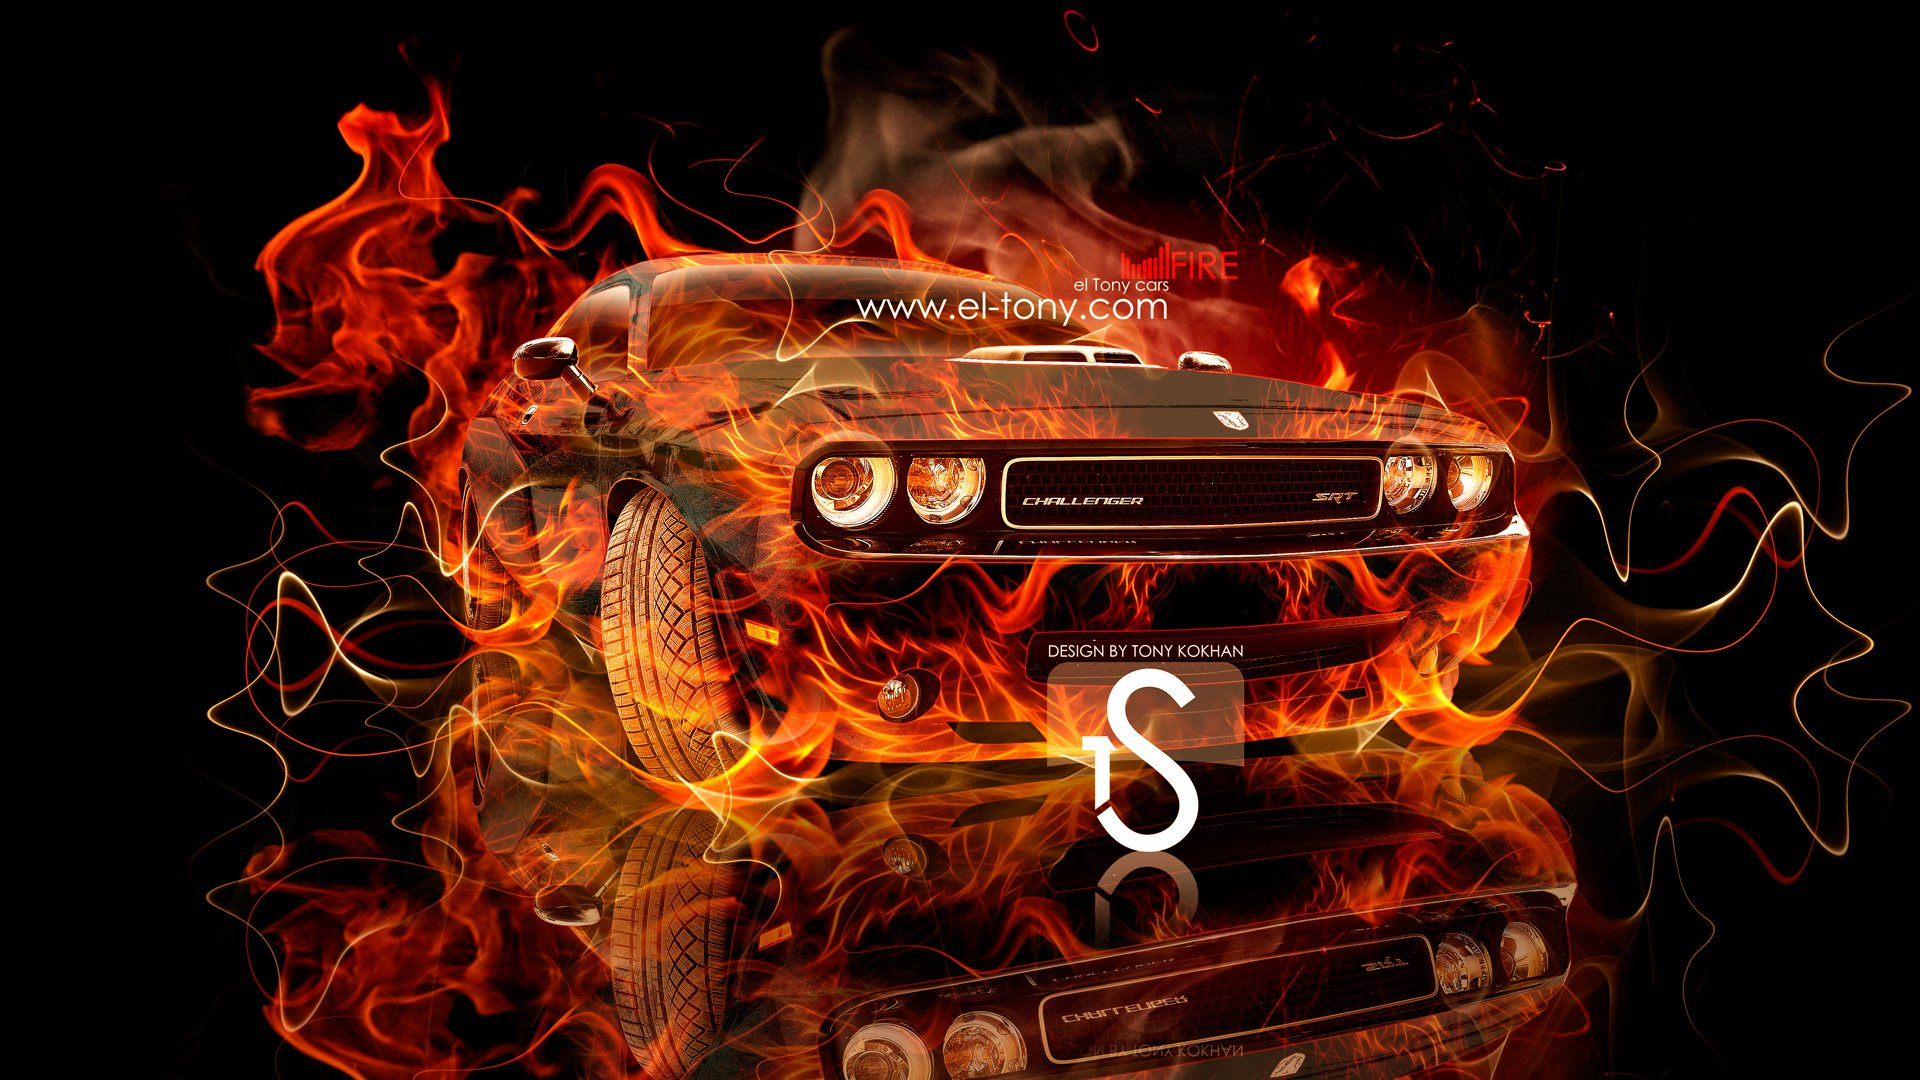 fire muscle car 2013 city hd wallpapers design by tony Car Pictures 1920x1080